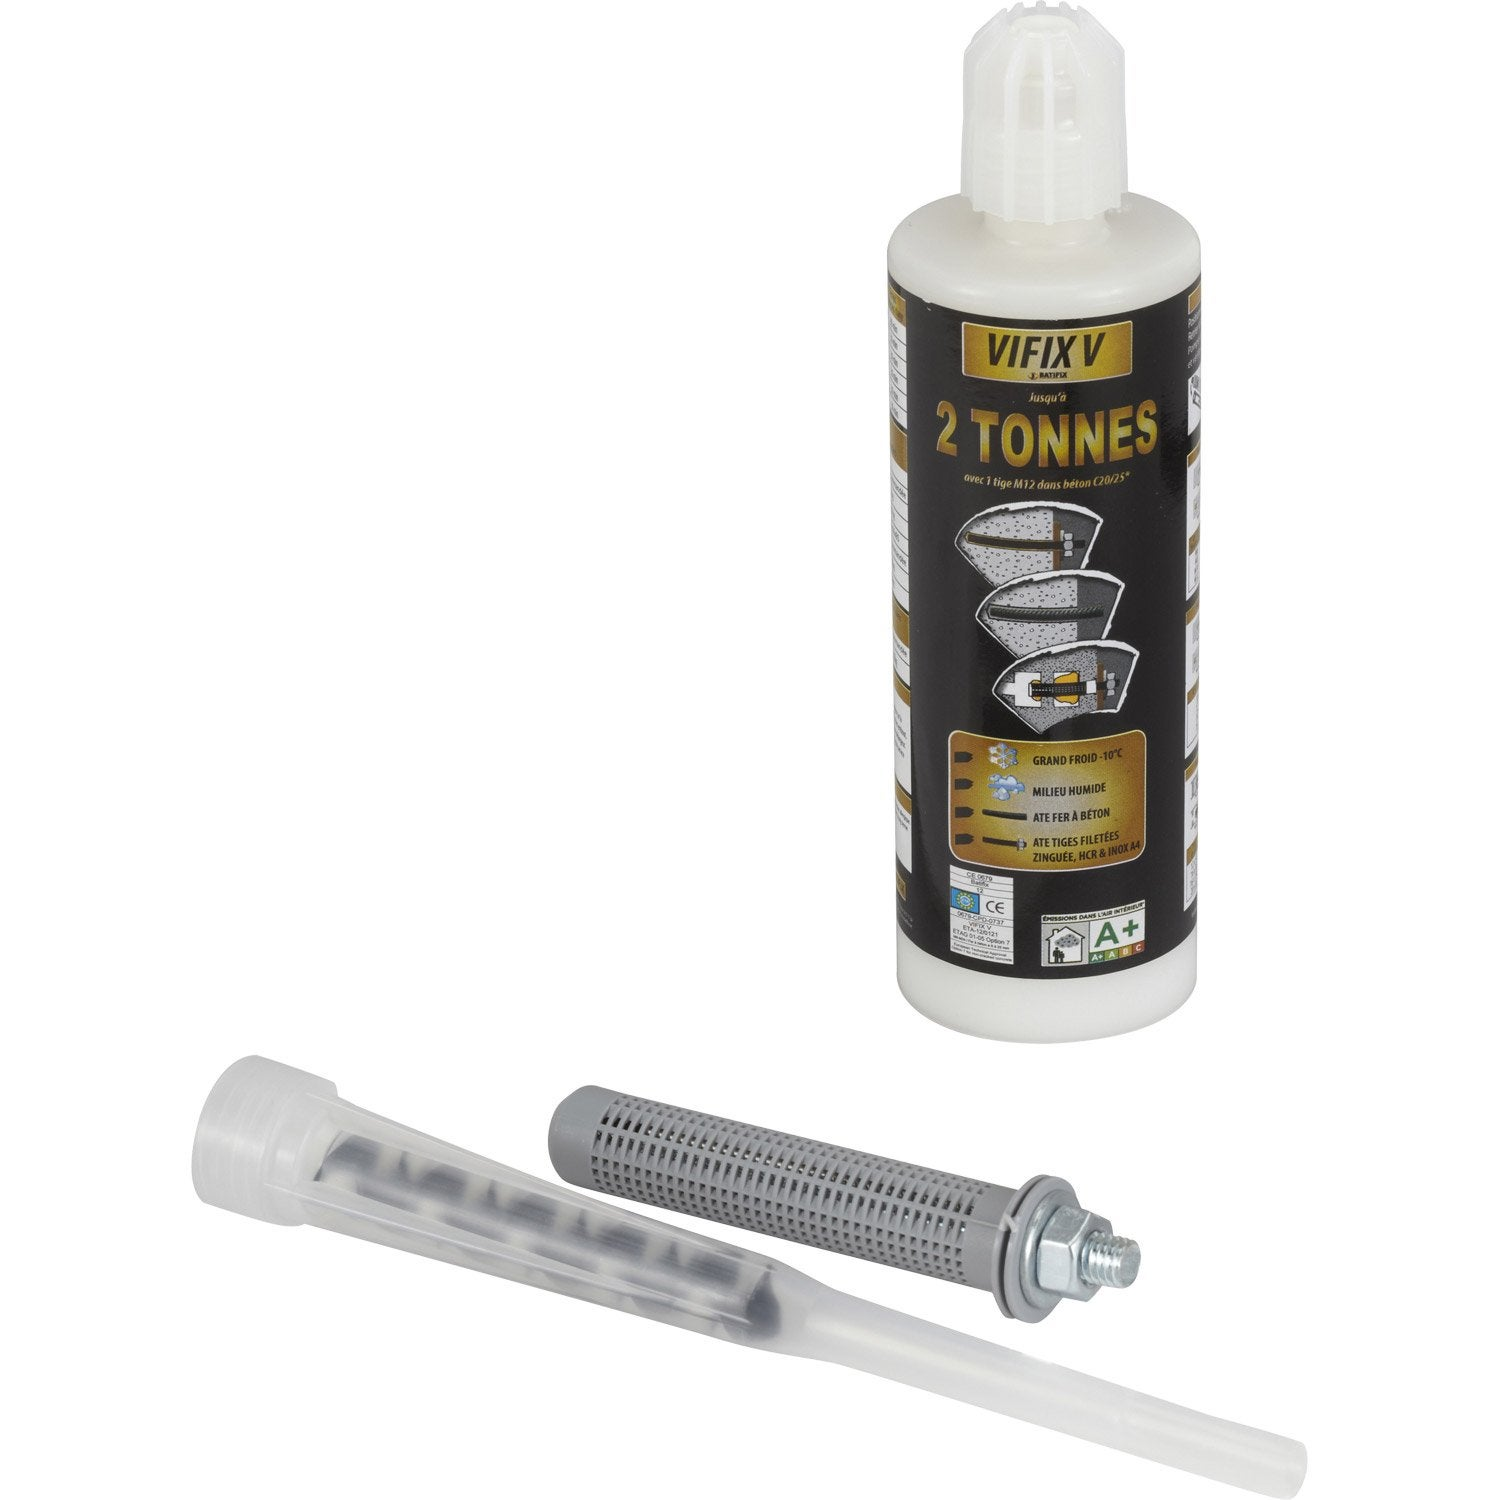 Kit de scellement chimique vifix v batifix leroy merlin - Kit reparacion baneras leroy merlin ...